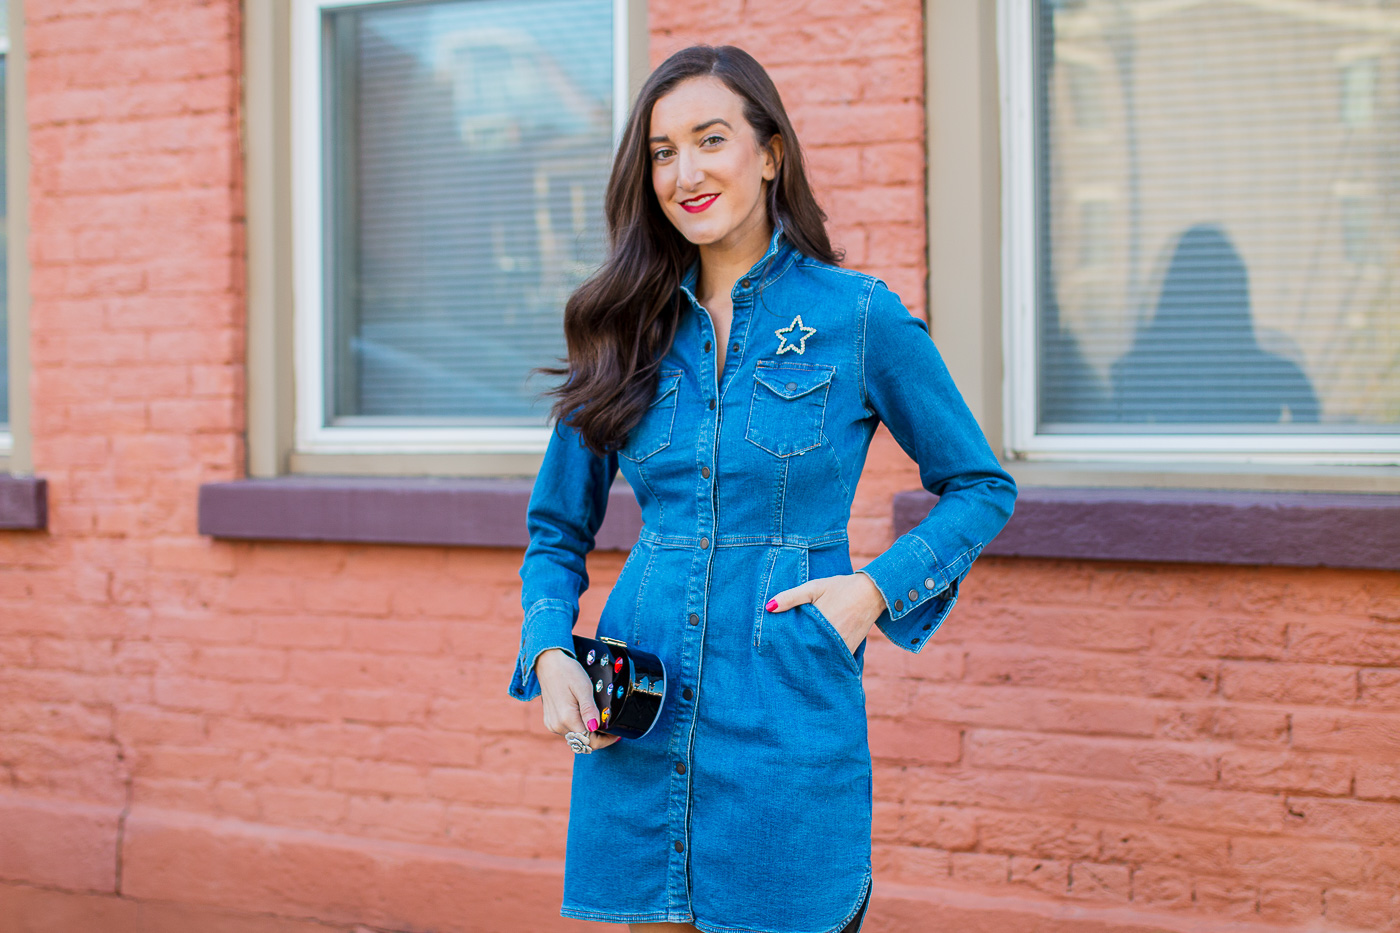 Cincinnati Fashion Blogger Baubles to Bubbles wearing Denim Dress